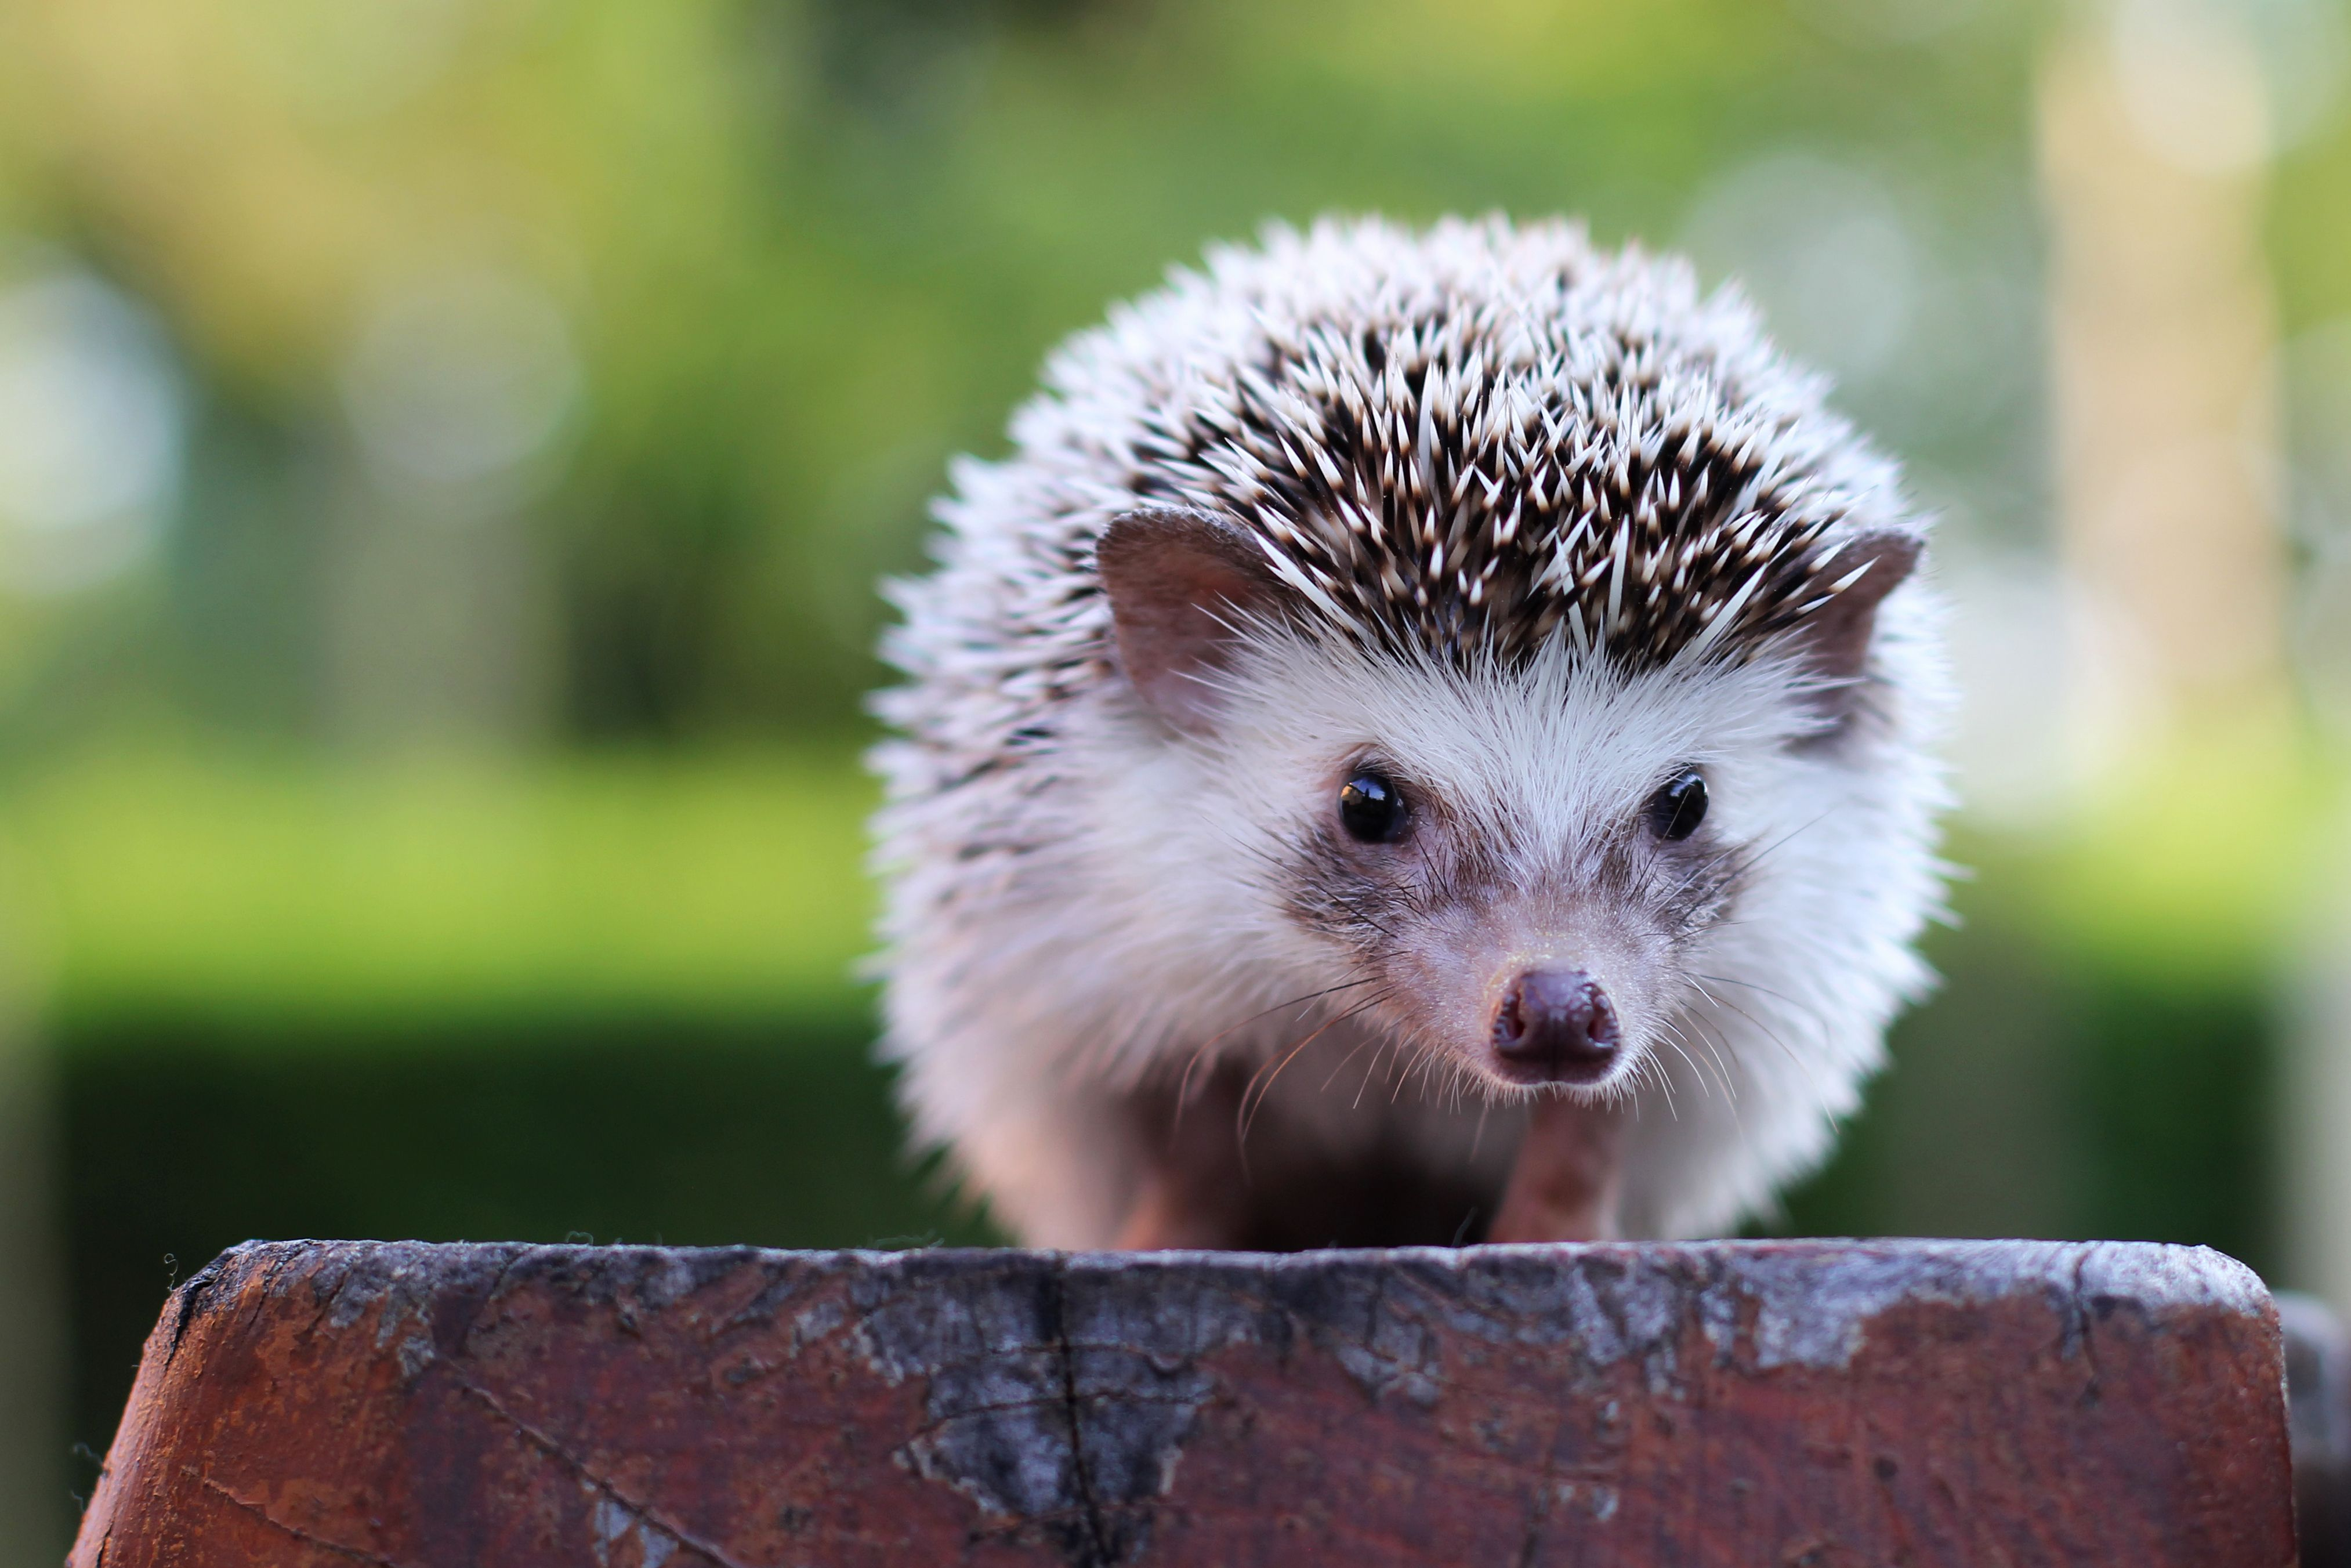 What It's Like Having a Hedgehog as a Pet - Caring for a Pet